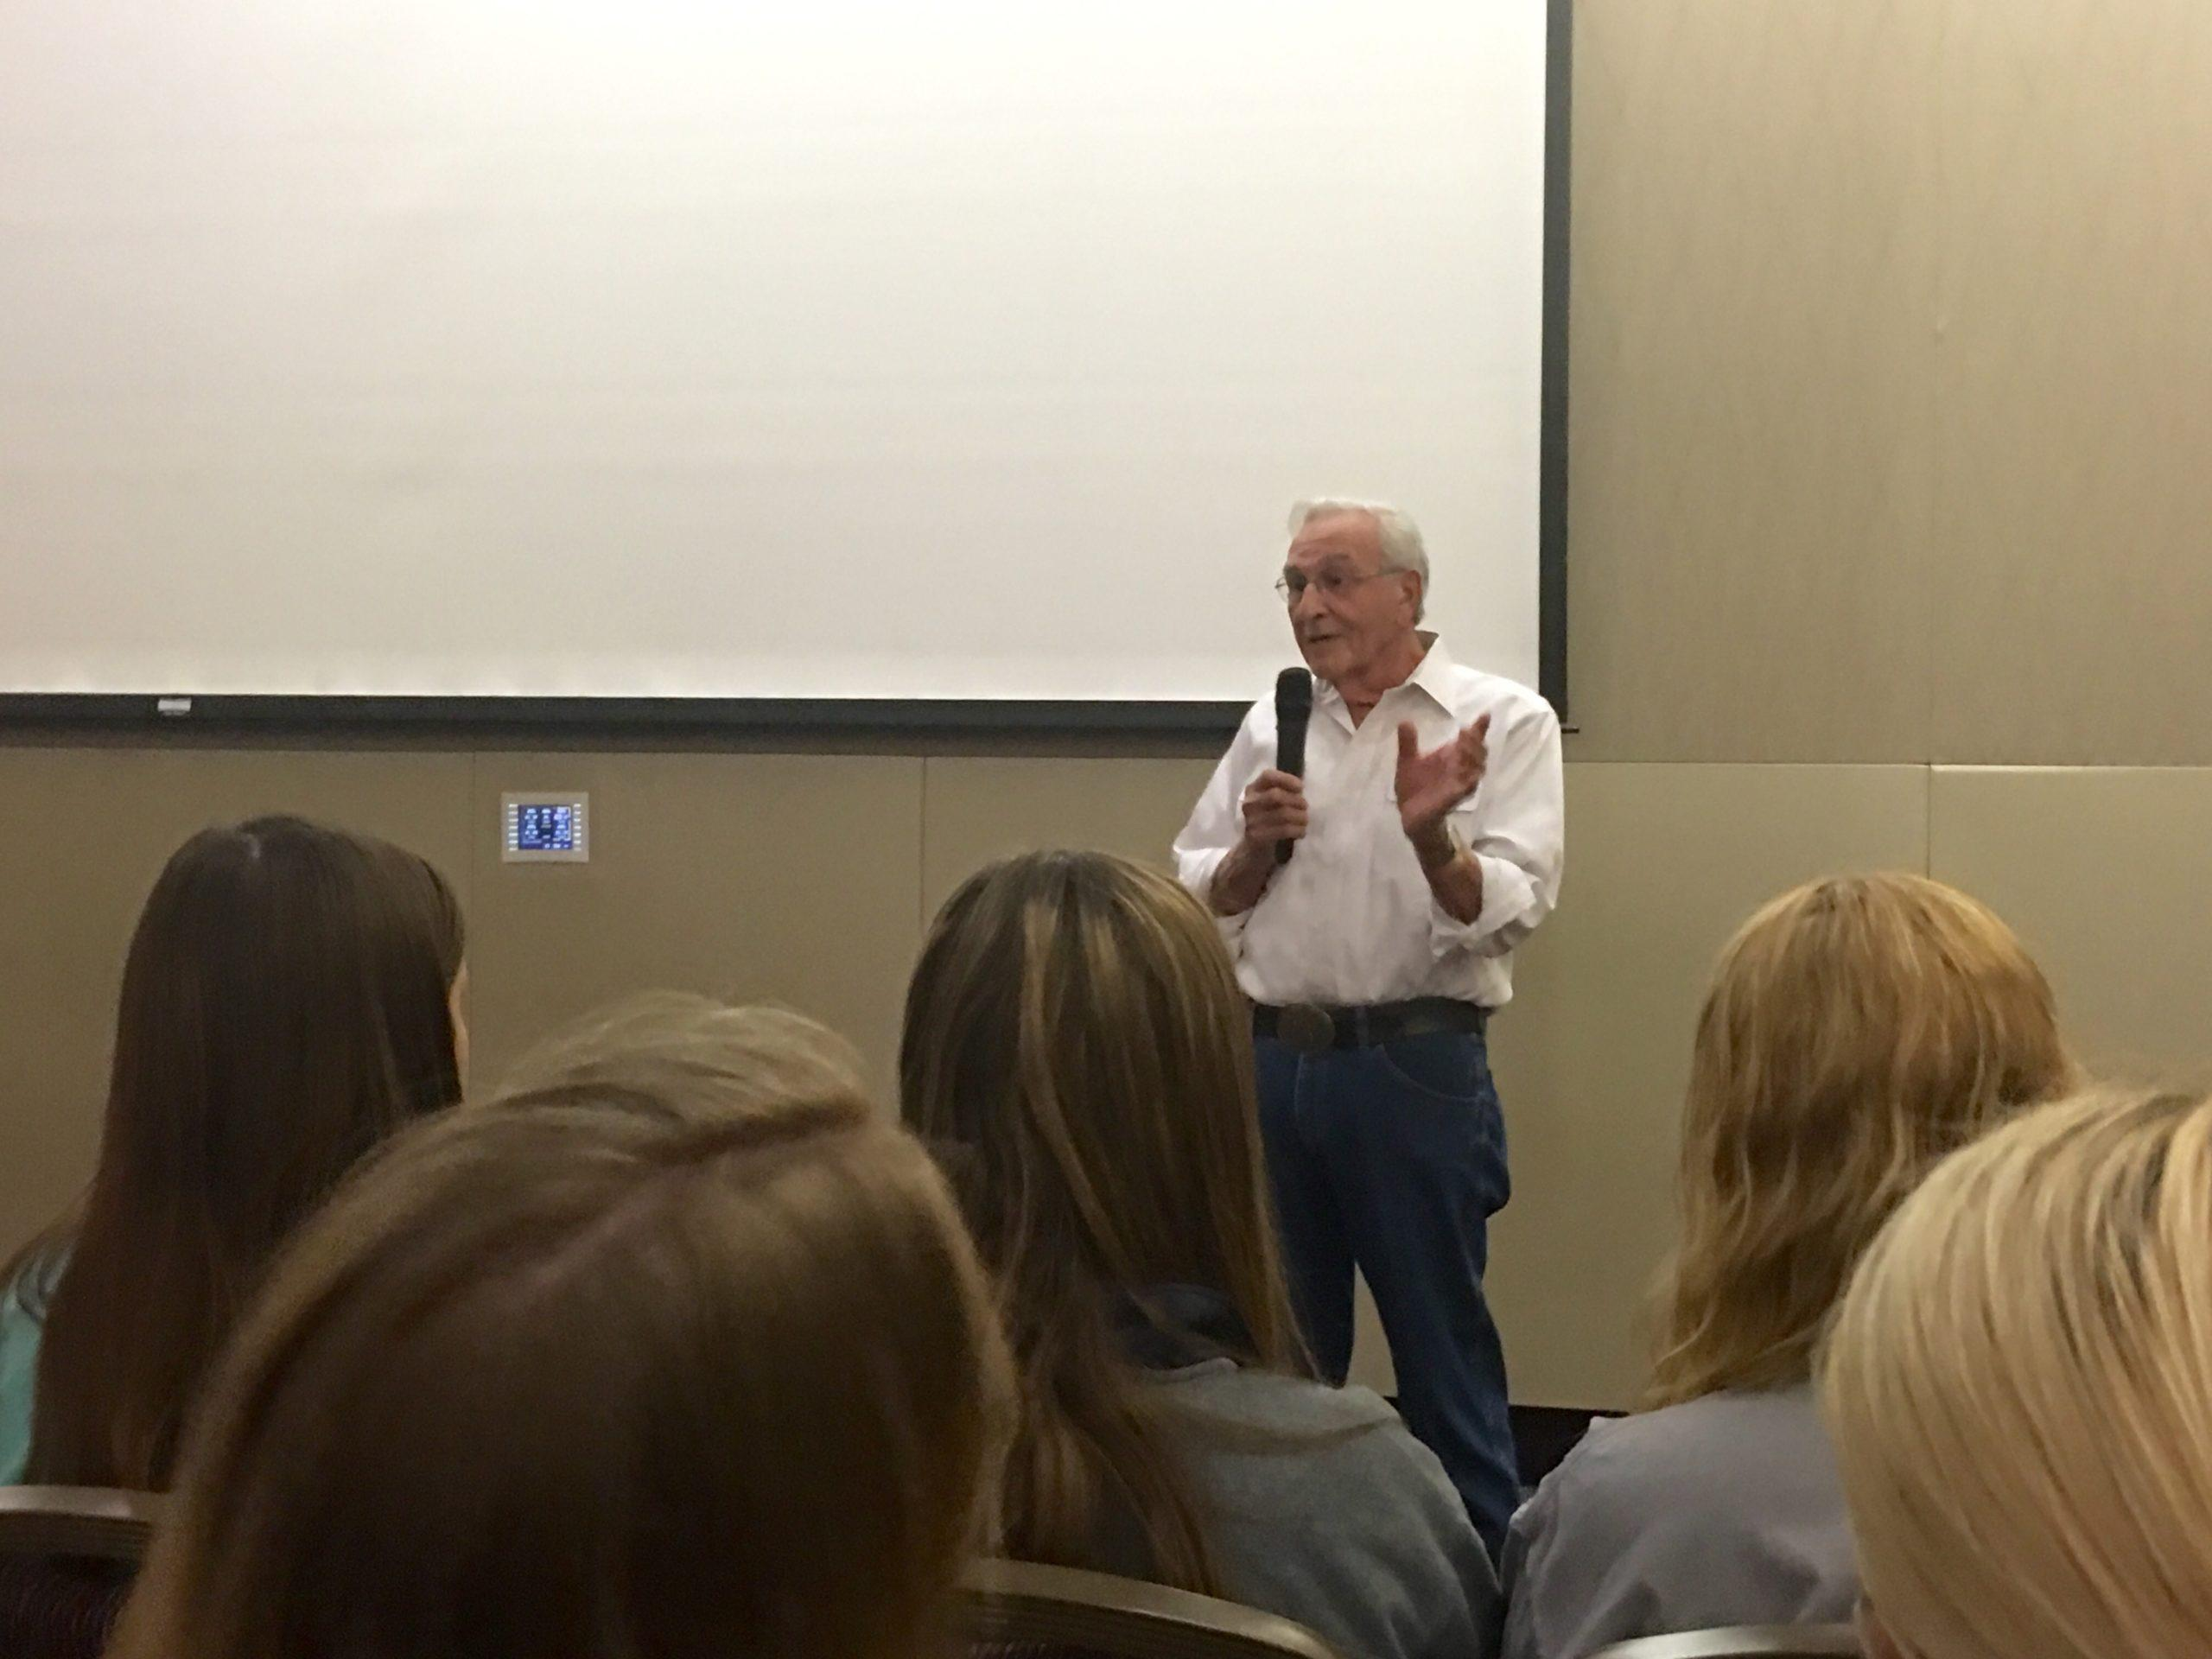 Holocaust survivor Harry Kahn speaks to students, faculty and community members.